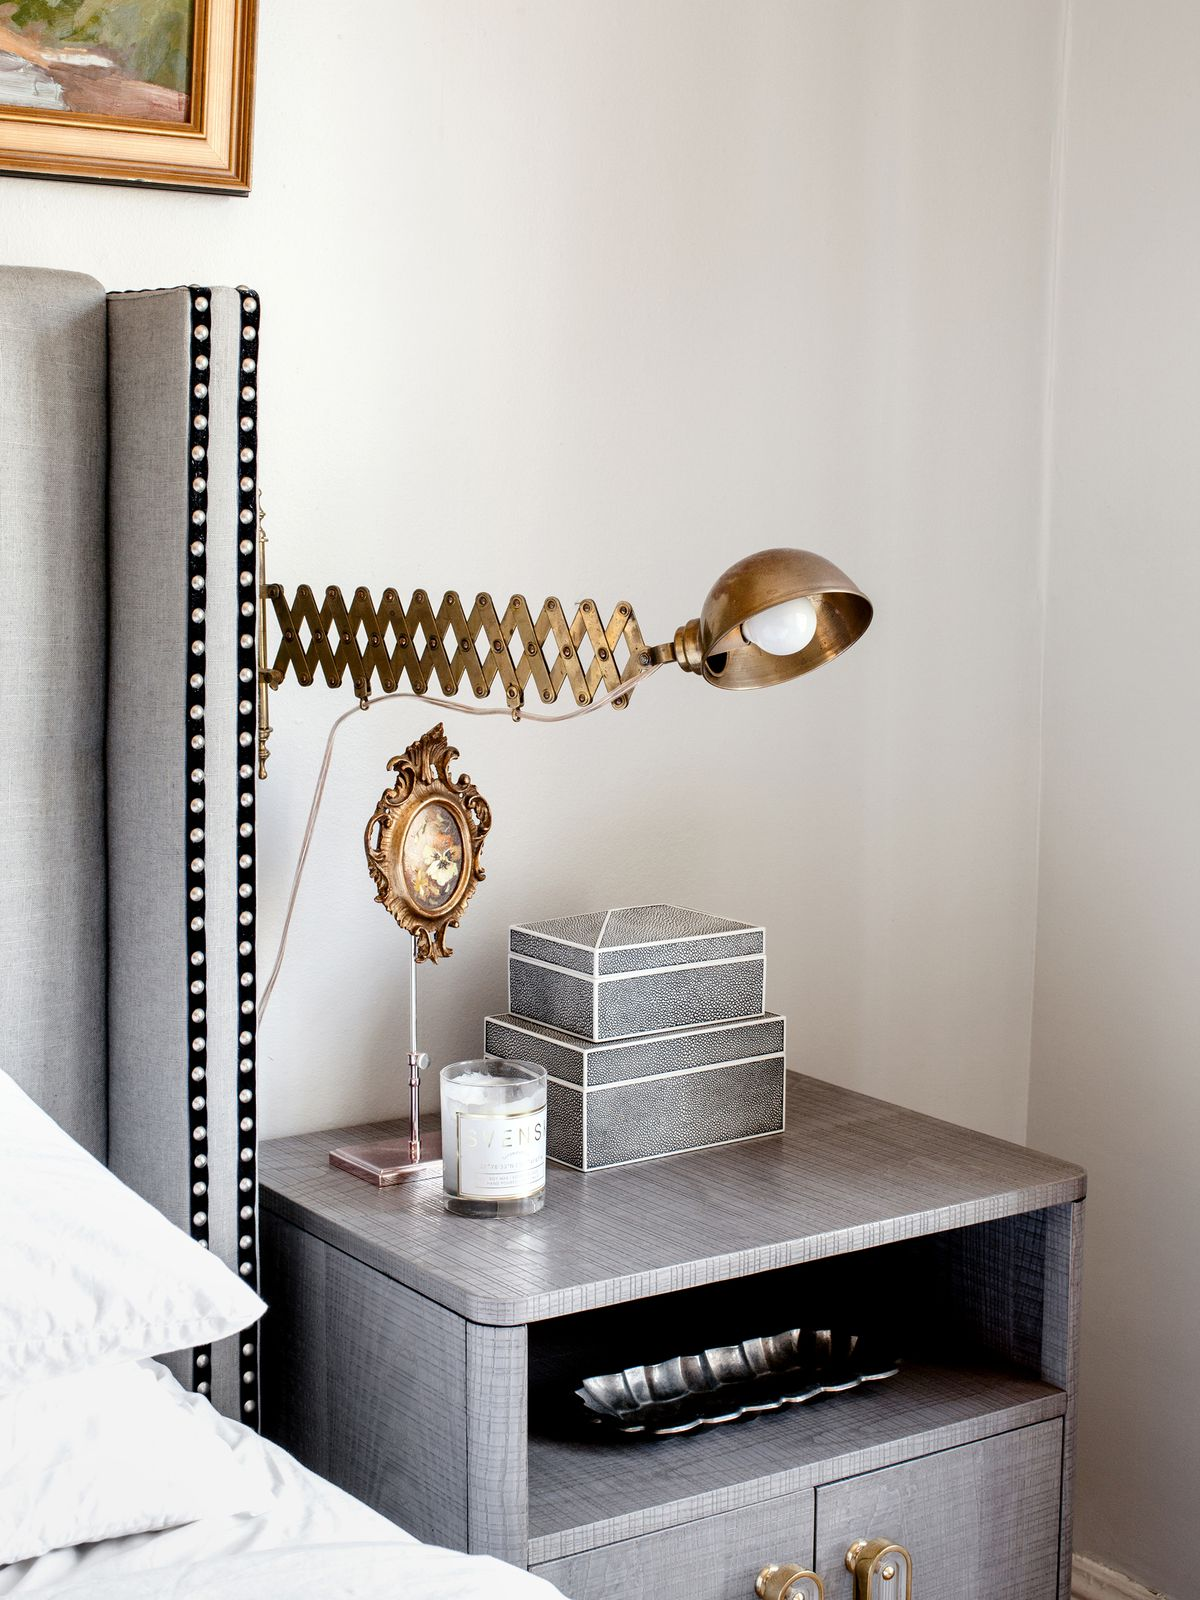 A detail shot show the corner of a headboard that is decorated with two black ribbons and nailhead trim. A brass light fixture is mounted on the wall beside it.